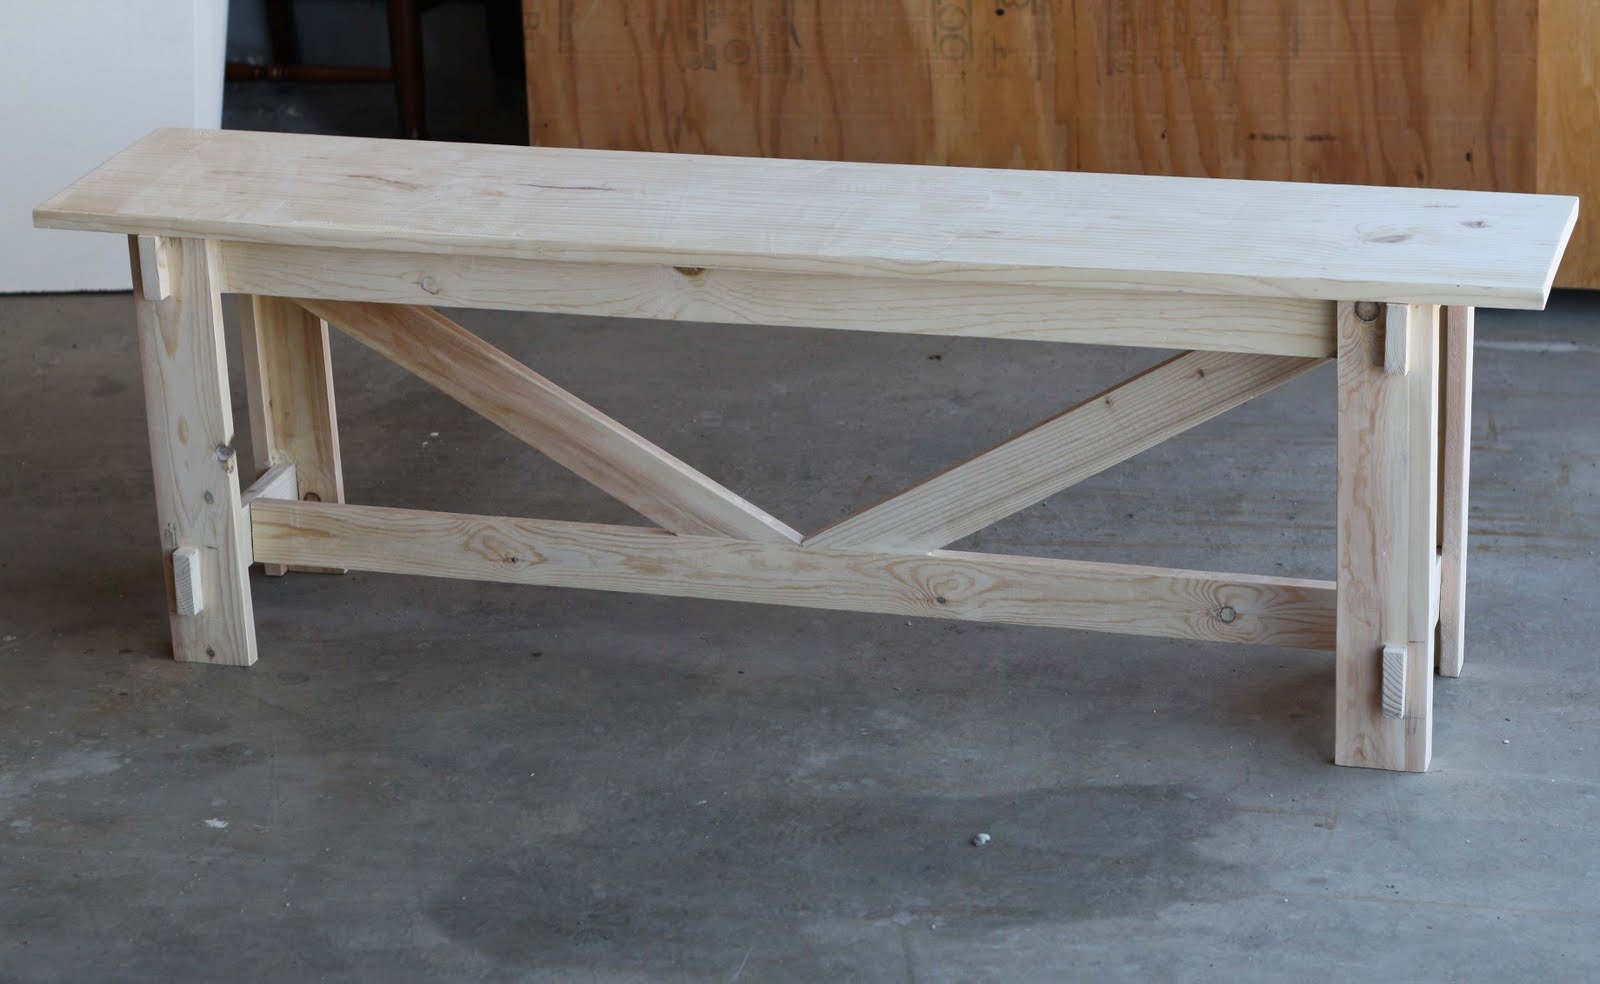 Wood Project Ideas Barn Wood Bench Plans